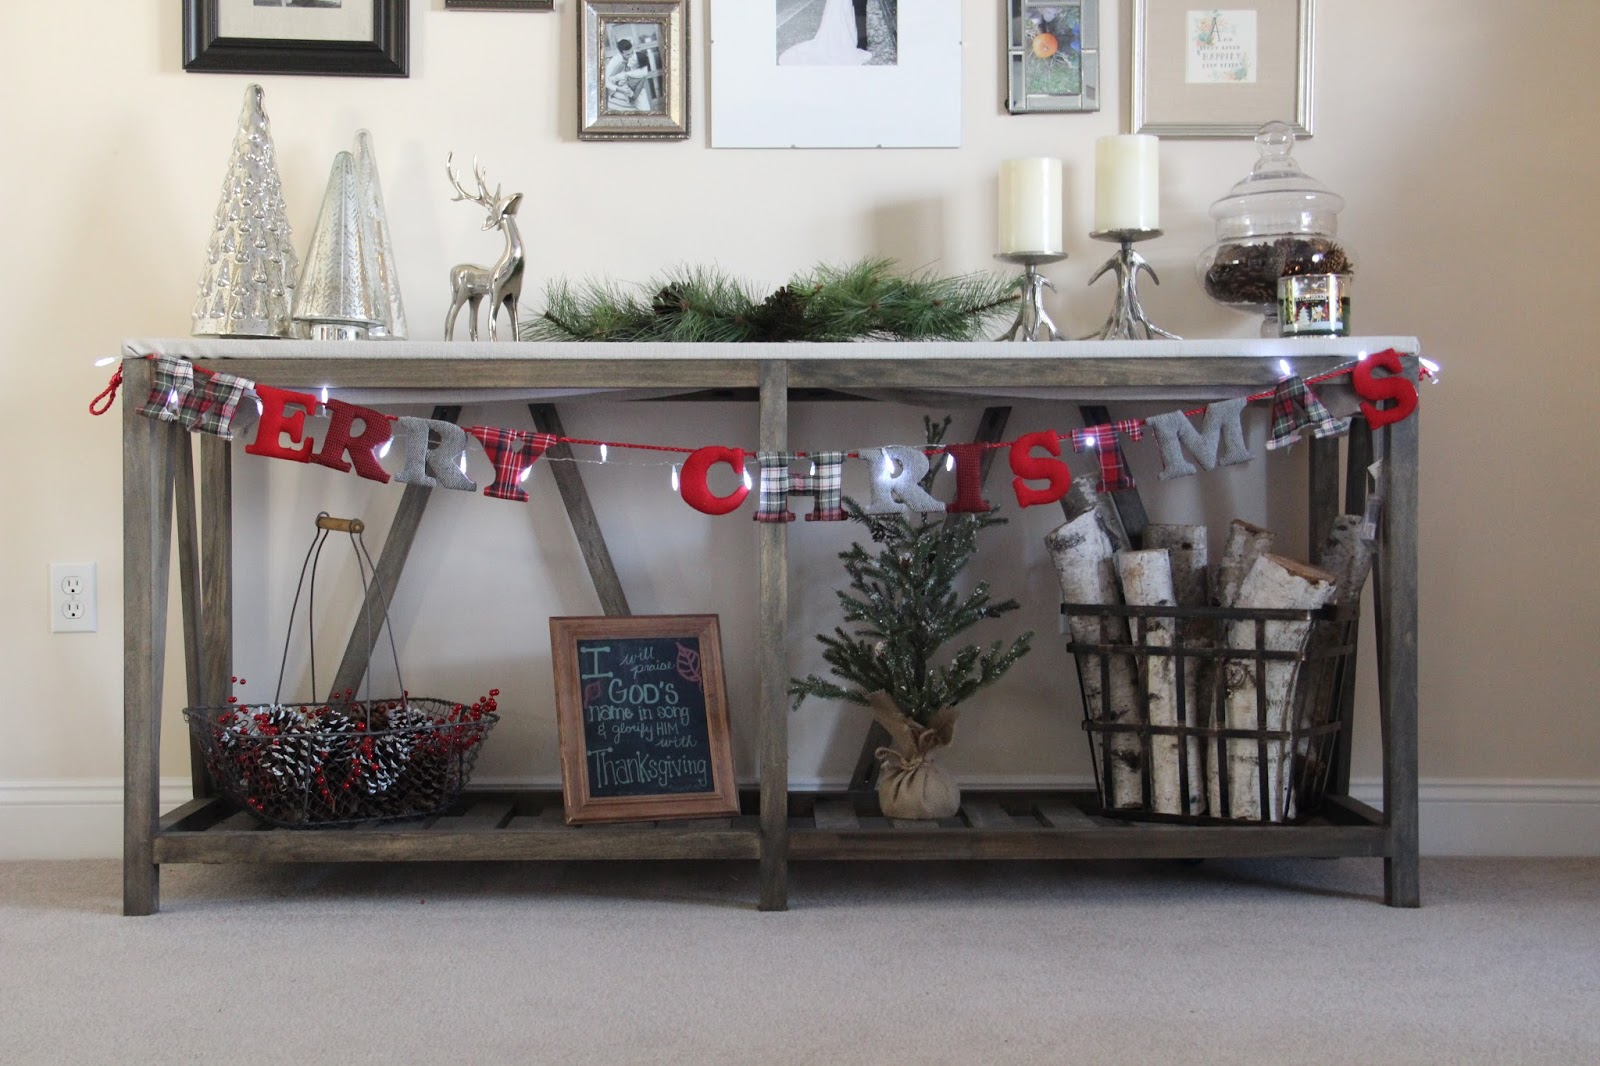 Hill Collection Christmas Décor, Come On In!